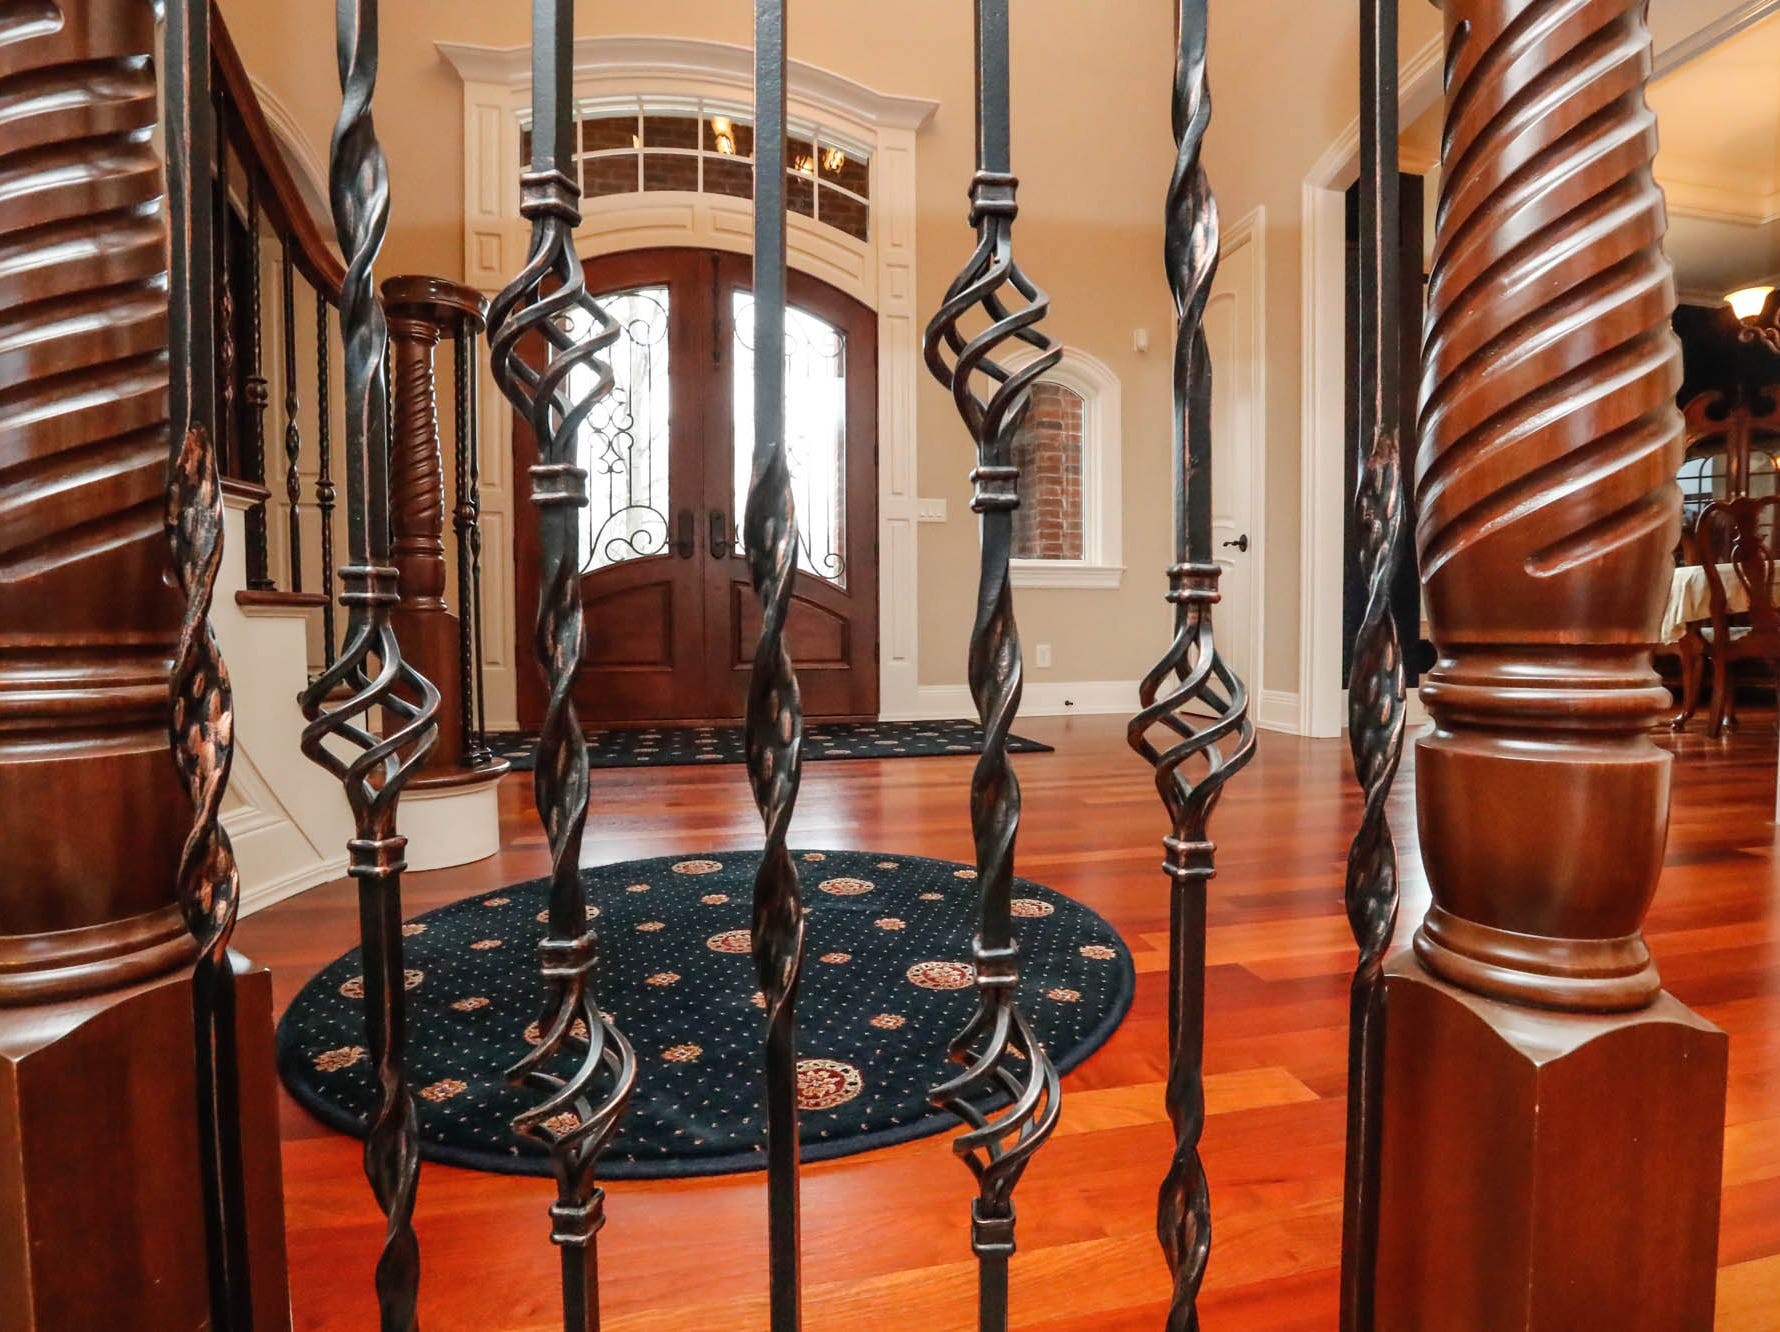 A  $2m home with elements of French country and Tuscan influence features a Brazilian cherry floor and large entryway with grand staircase, up for sale in Bargersville Ind. on Wednesday, Jan. 9, 2019. The home sits on 8.1 acres.